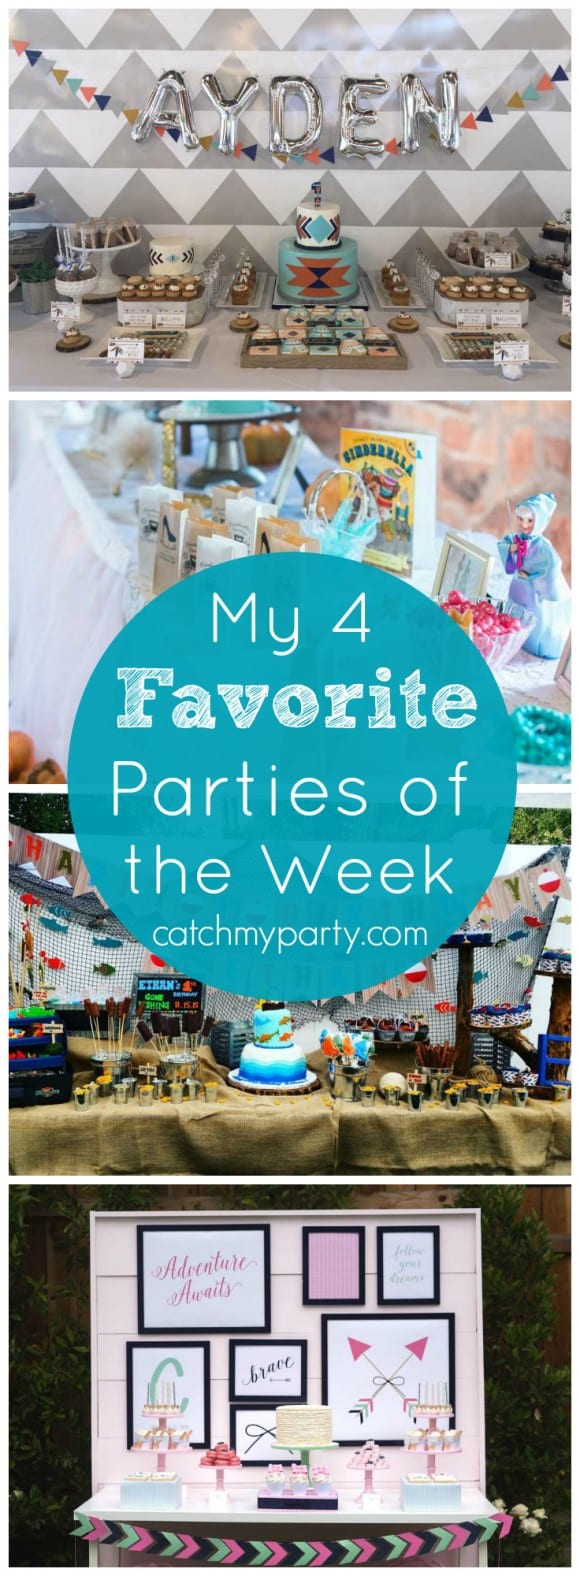 Tribal birthday parties and more | CatchMyParty.com